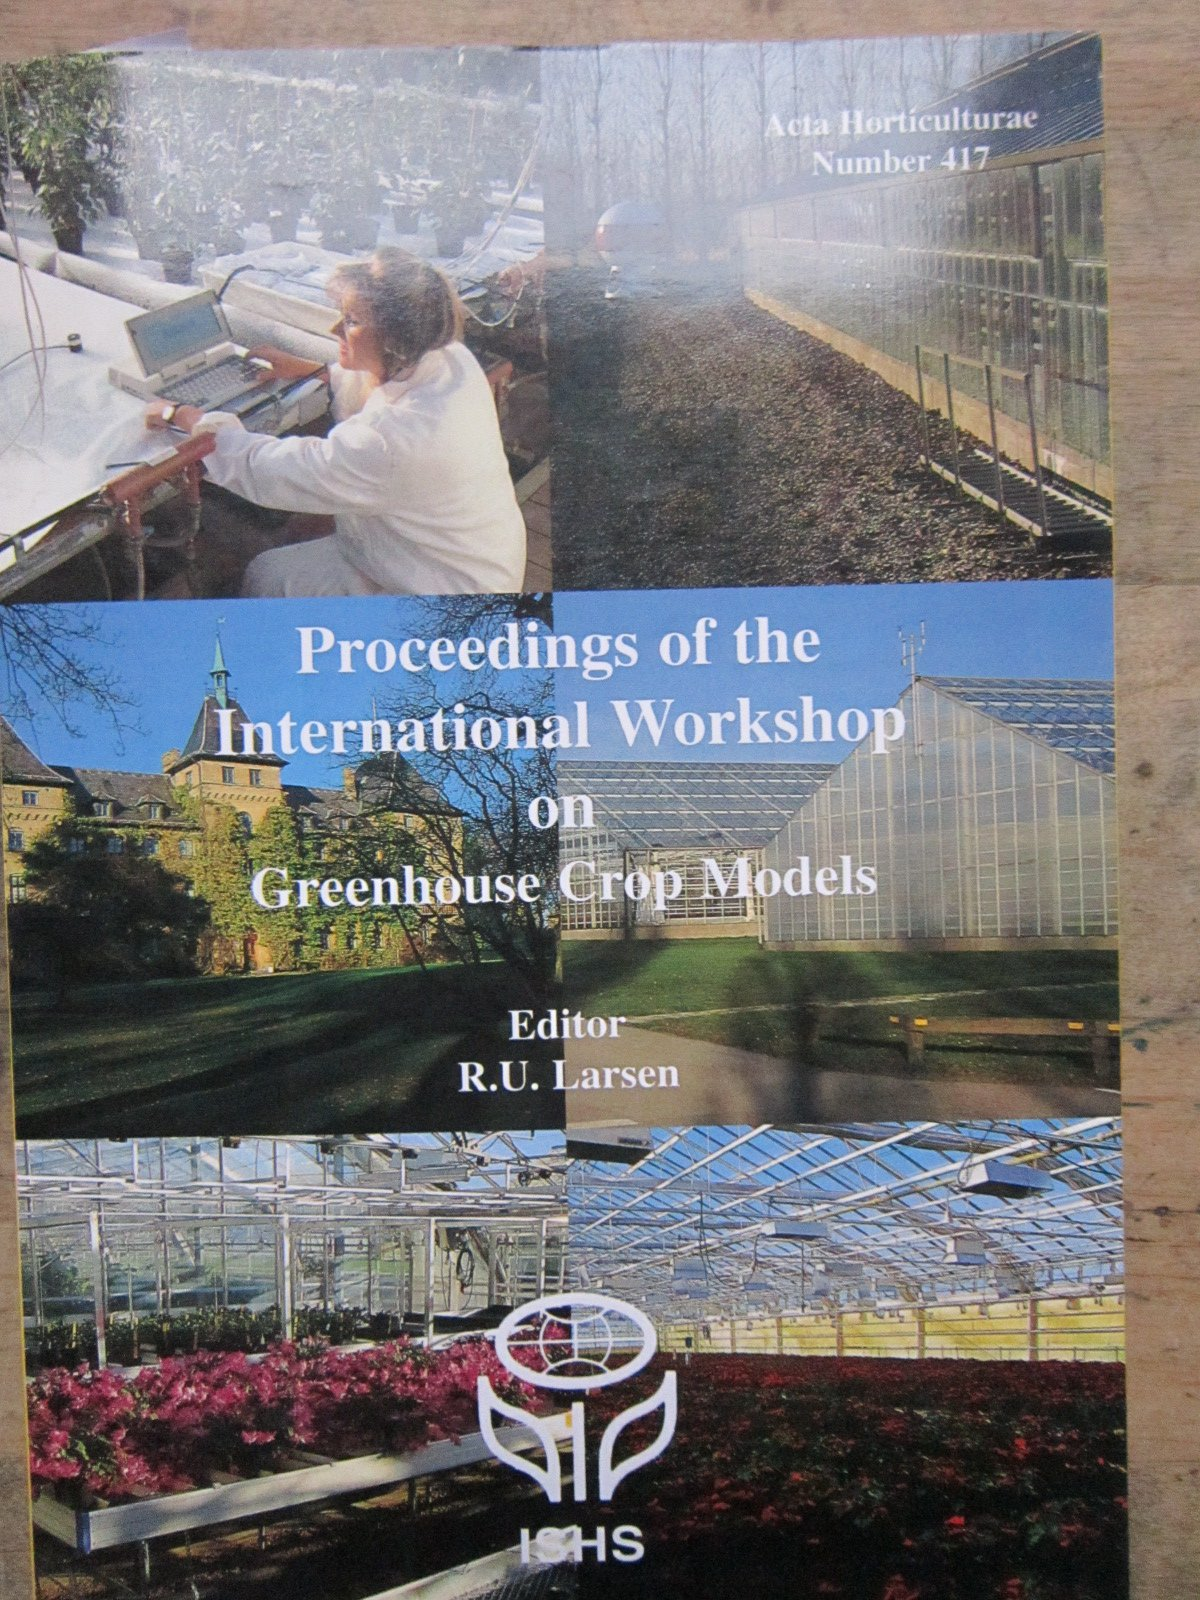 Proceedings of the International Workshop on Greenhouse Crop Models